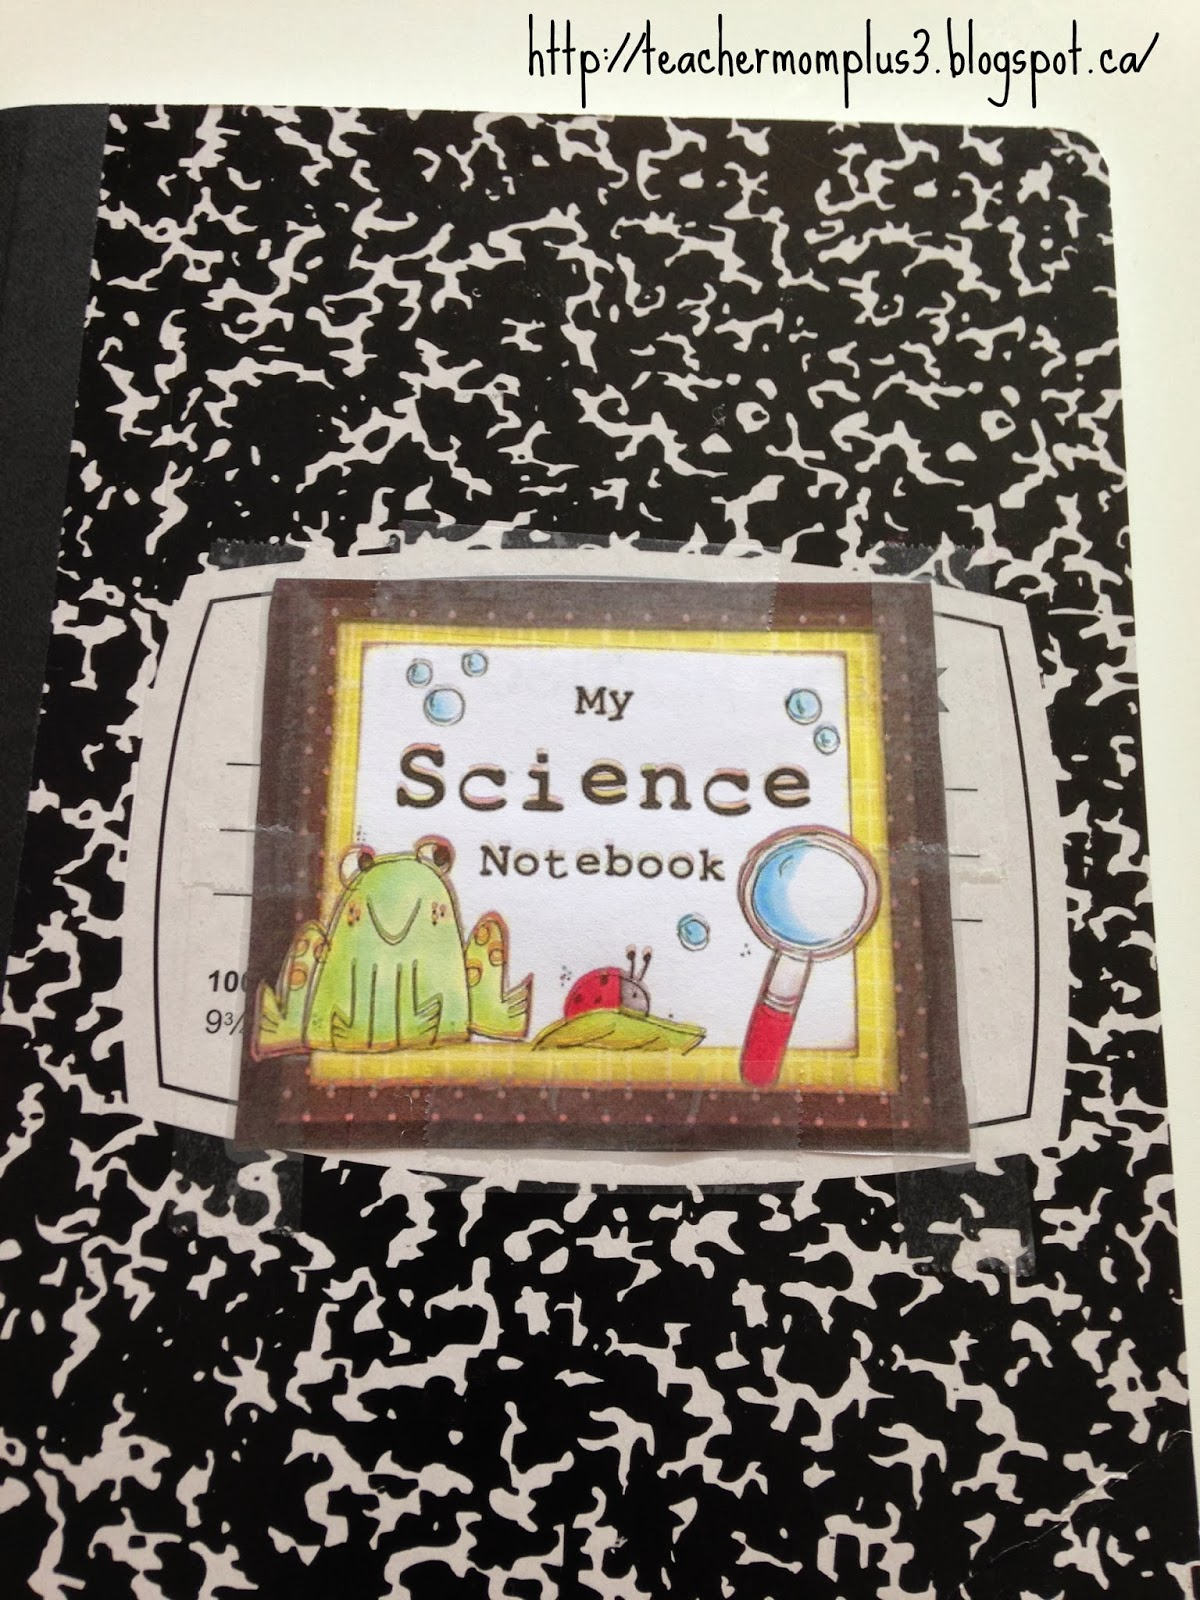 He ended up adding more than 5 he really enjoyed this activity next week were going to read what is a scientist by barbara lehn